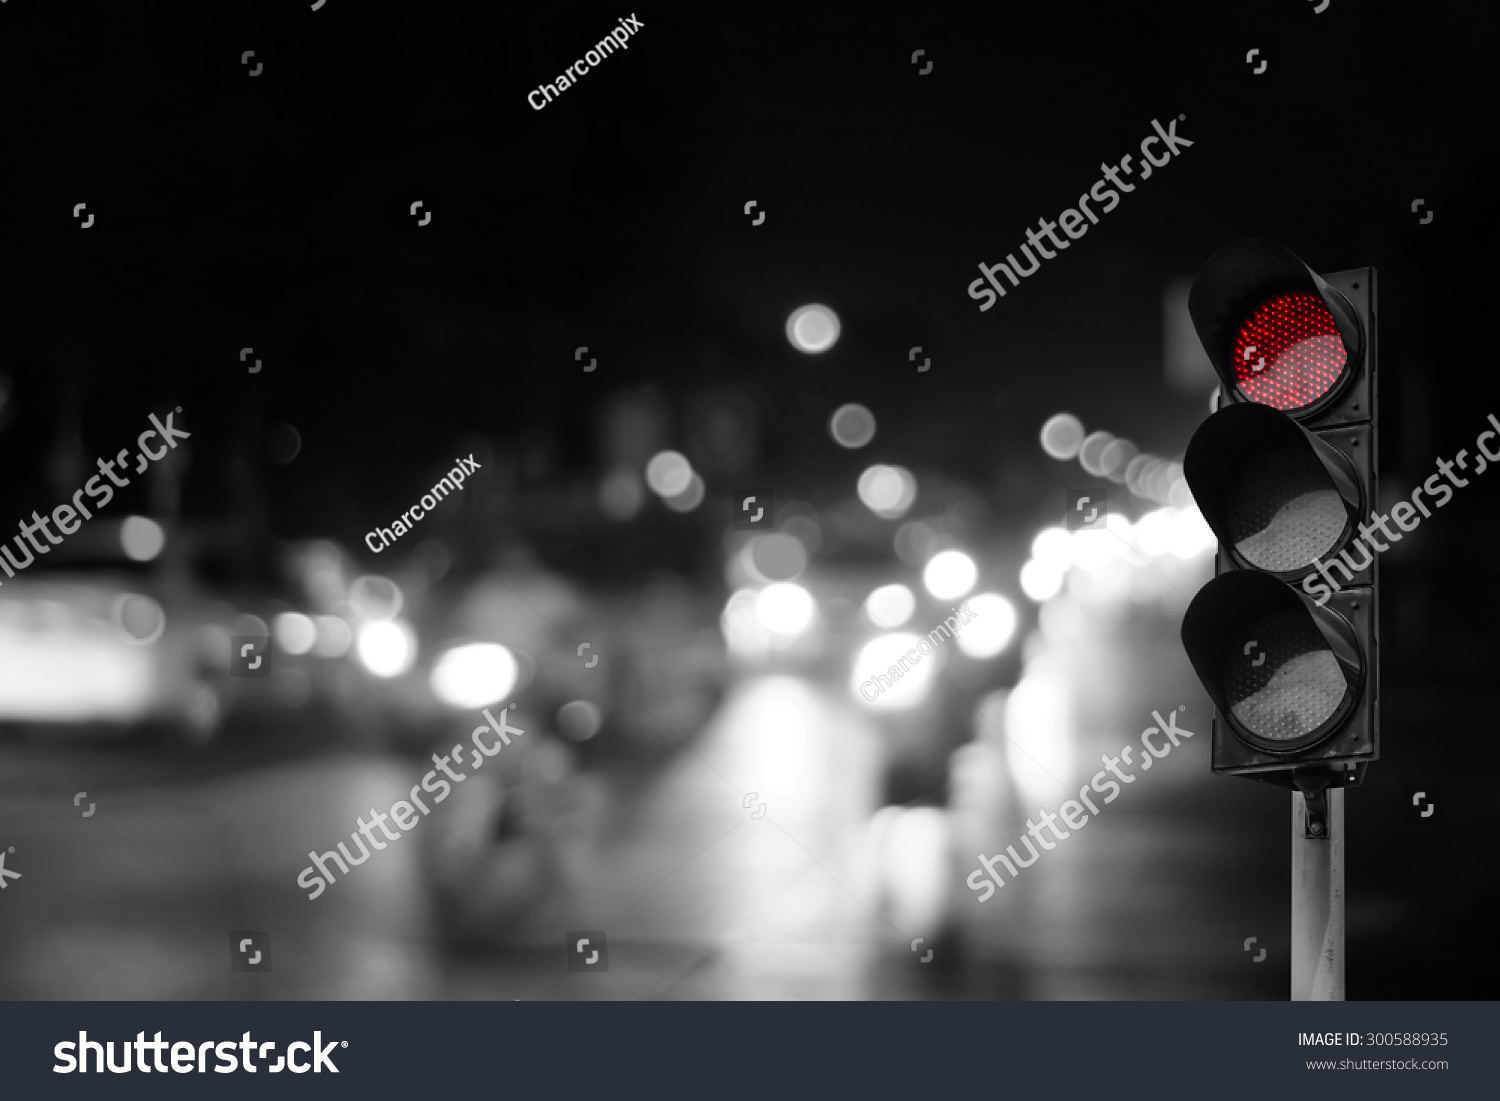 Red Traffic Light On Road Night Stock Photo 300588935 - Shutterstock for Traffic Light On Road At Night  146hul